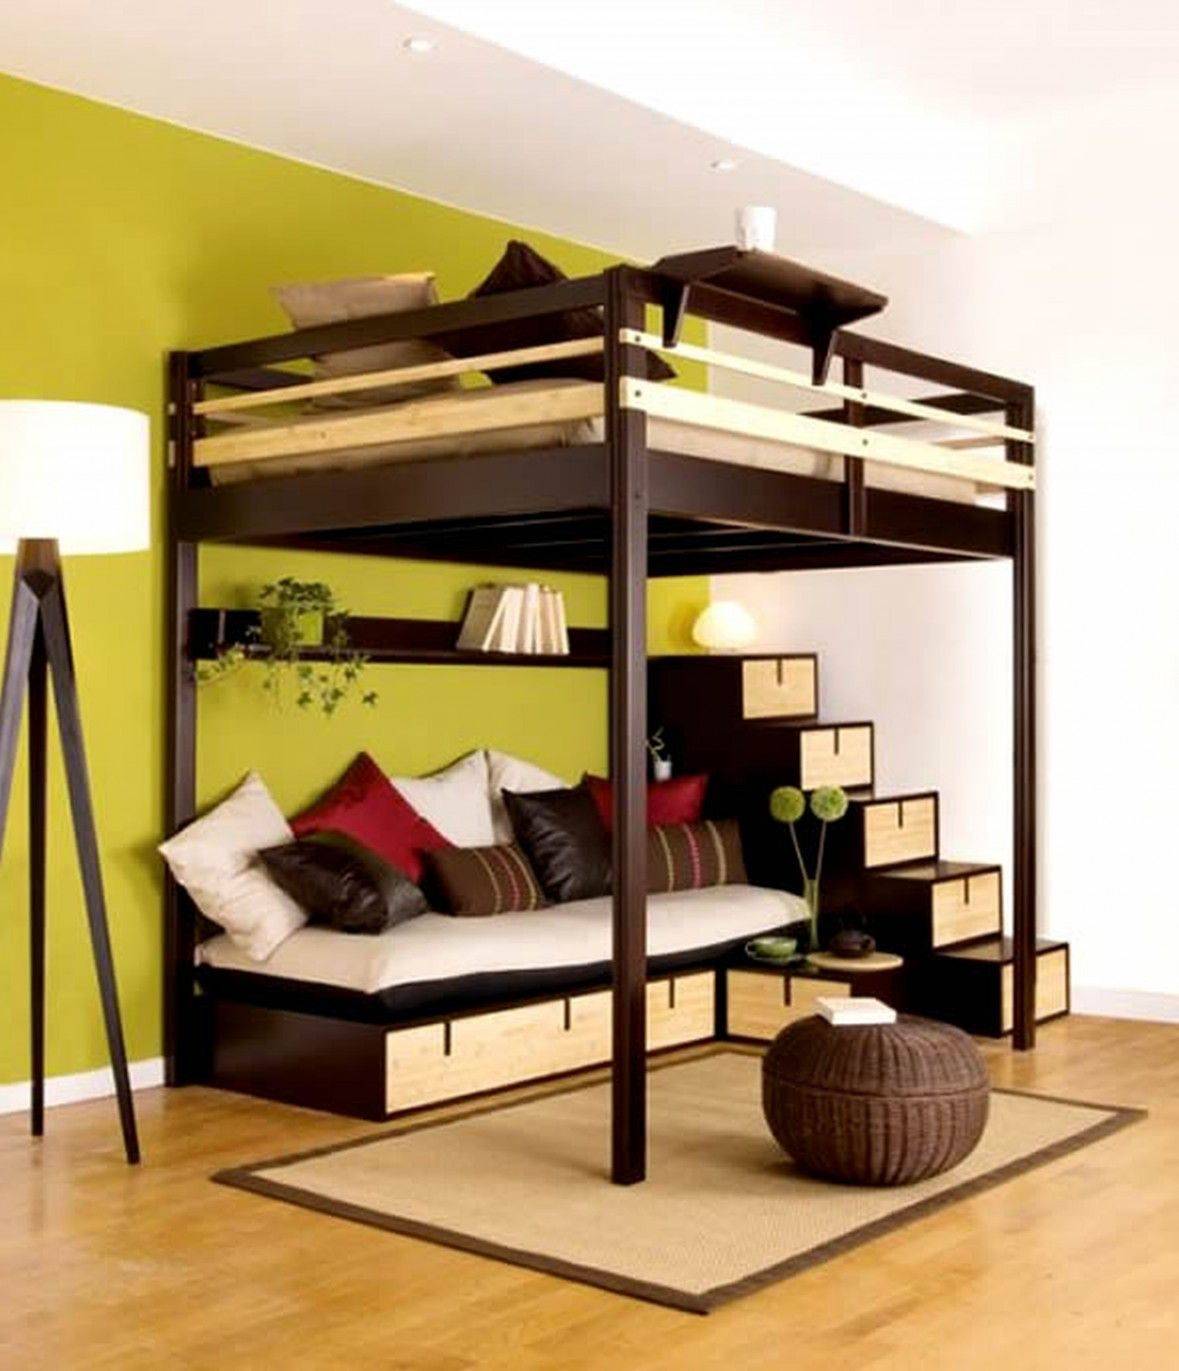 Childrens Storage Beds For Small Rooms furniture cool space saving beds designs for small rooms with